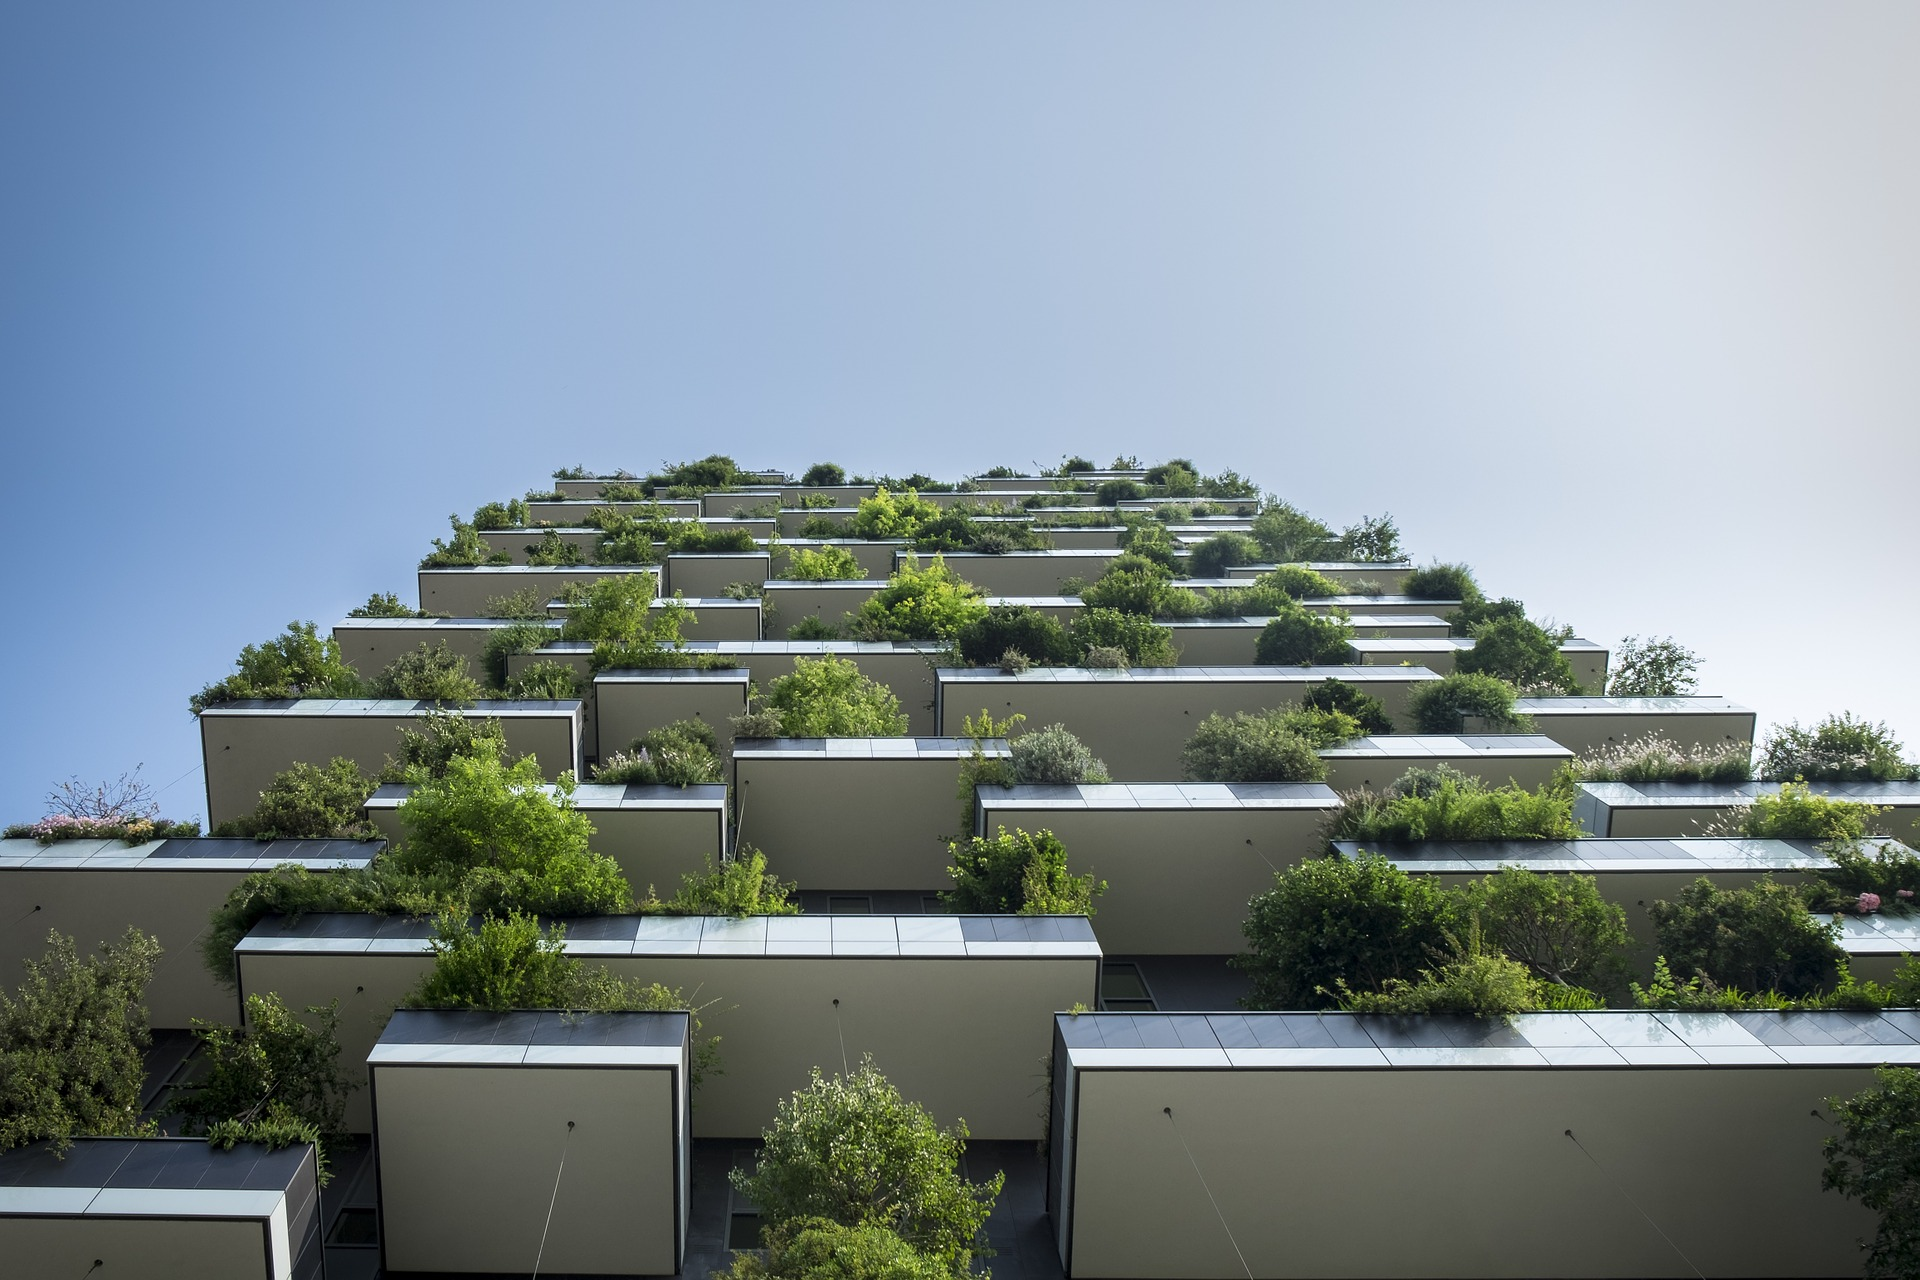 Sustainability of the building